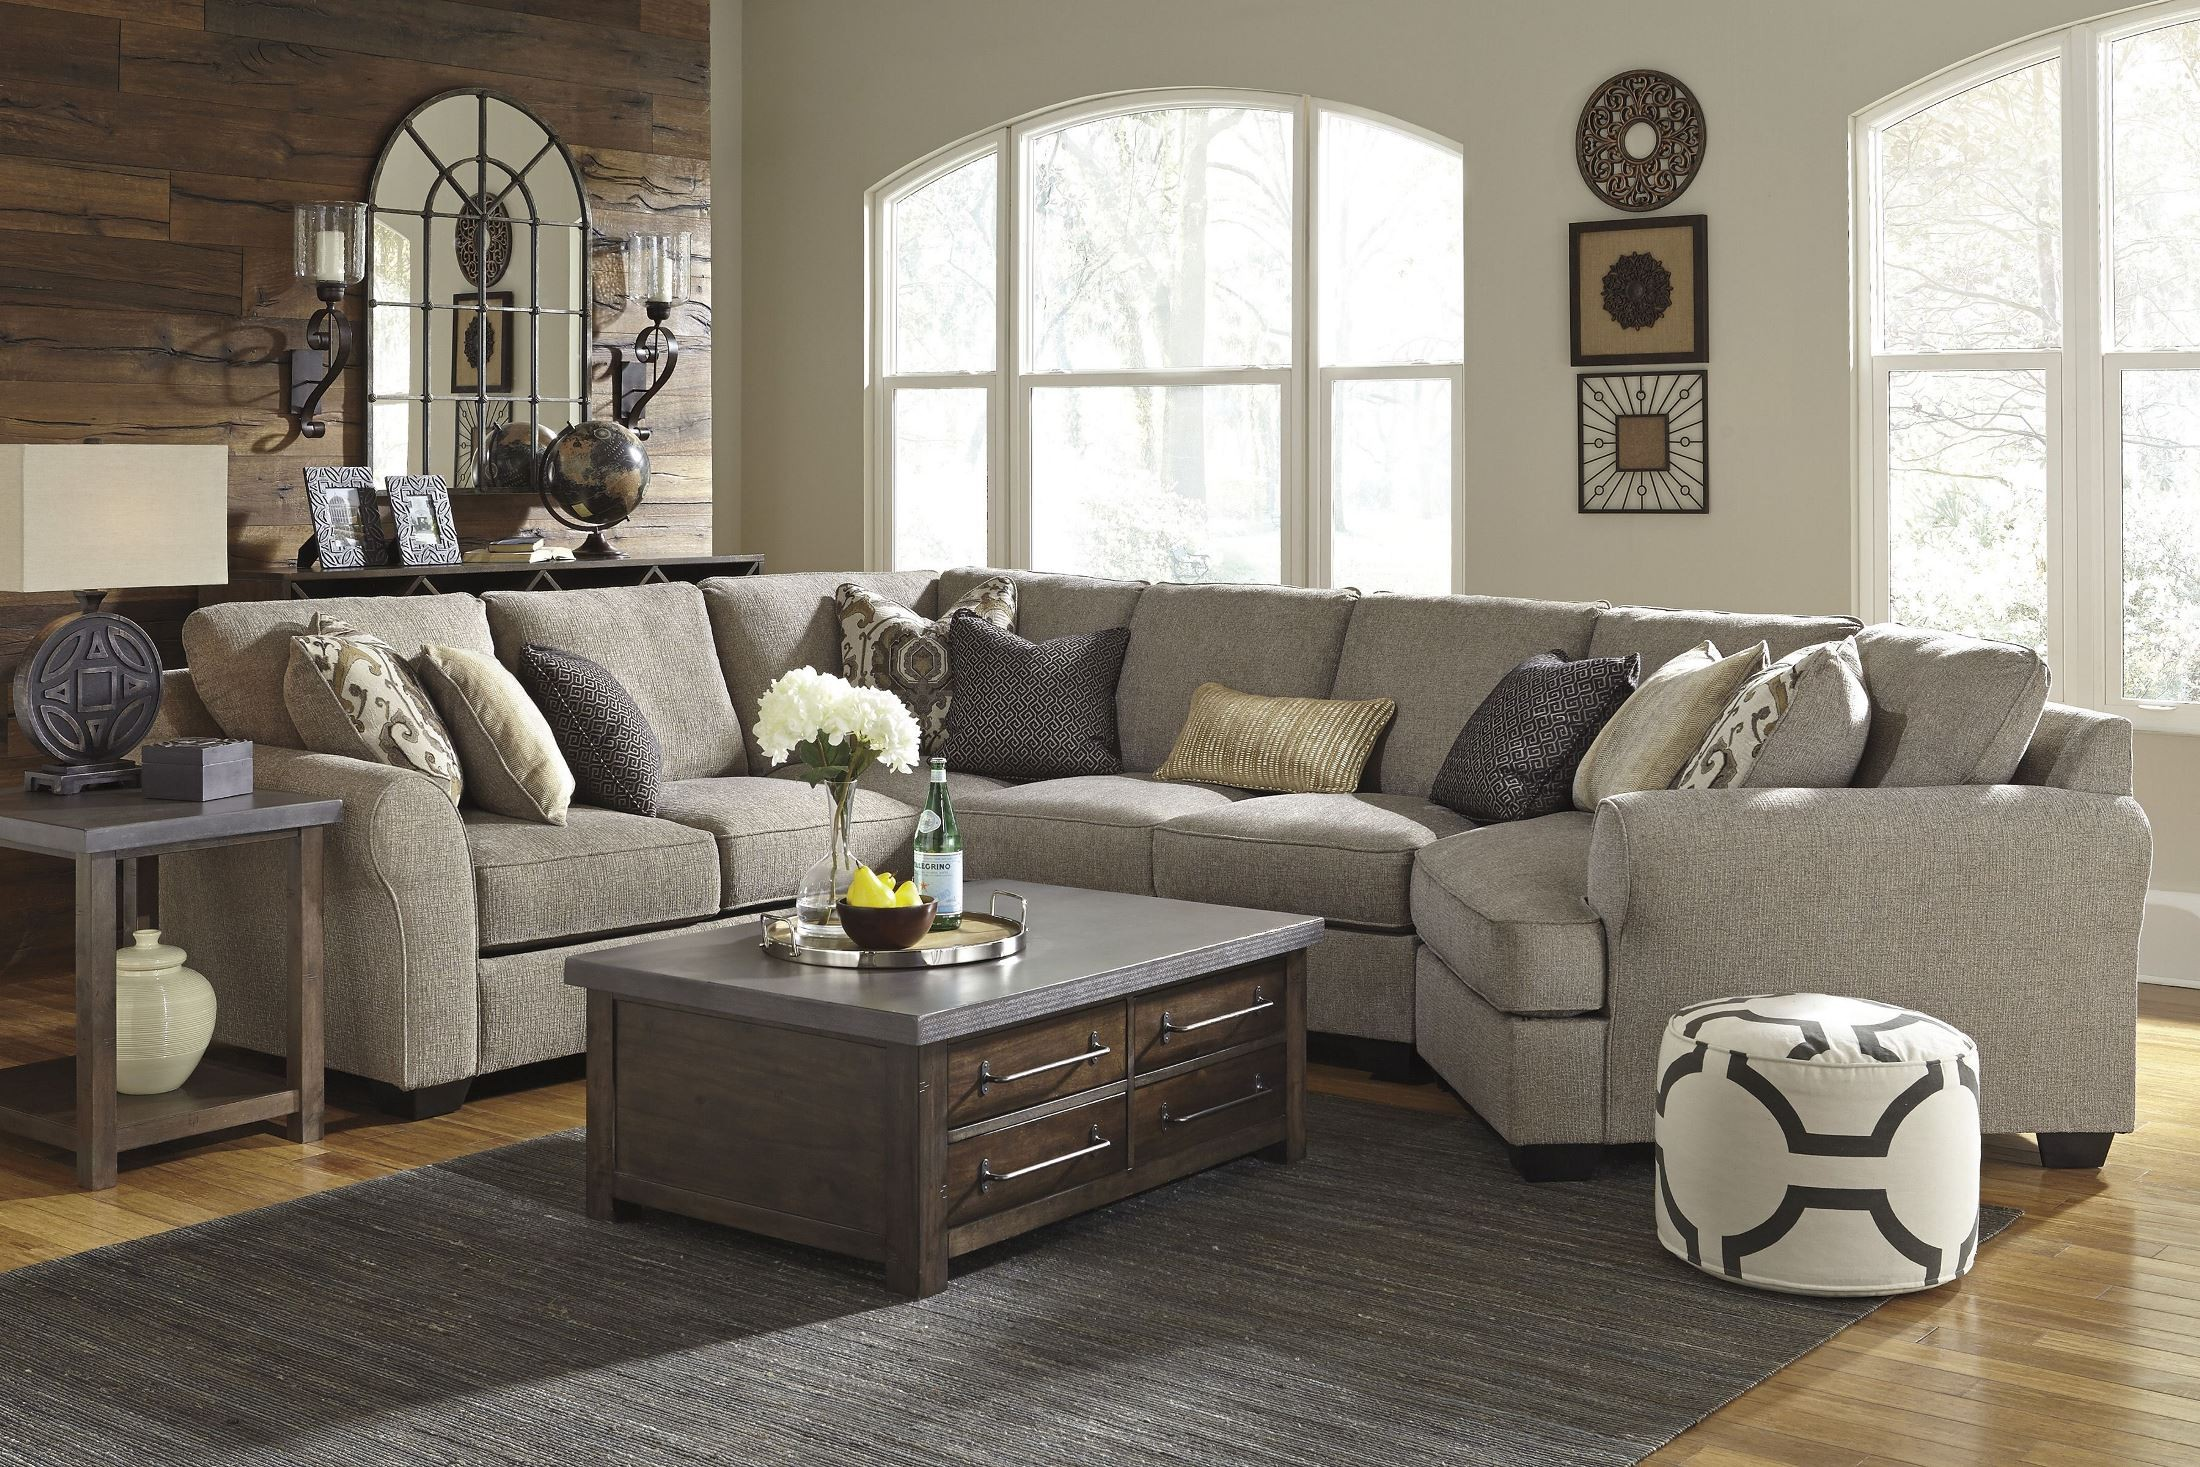 piece furniture custom with b cuddler pc customizable products sofa raf by built four sectional